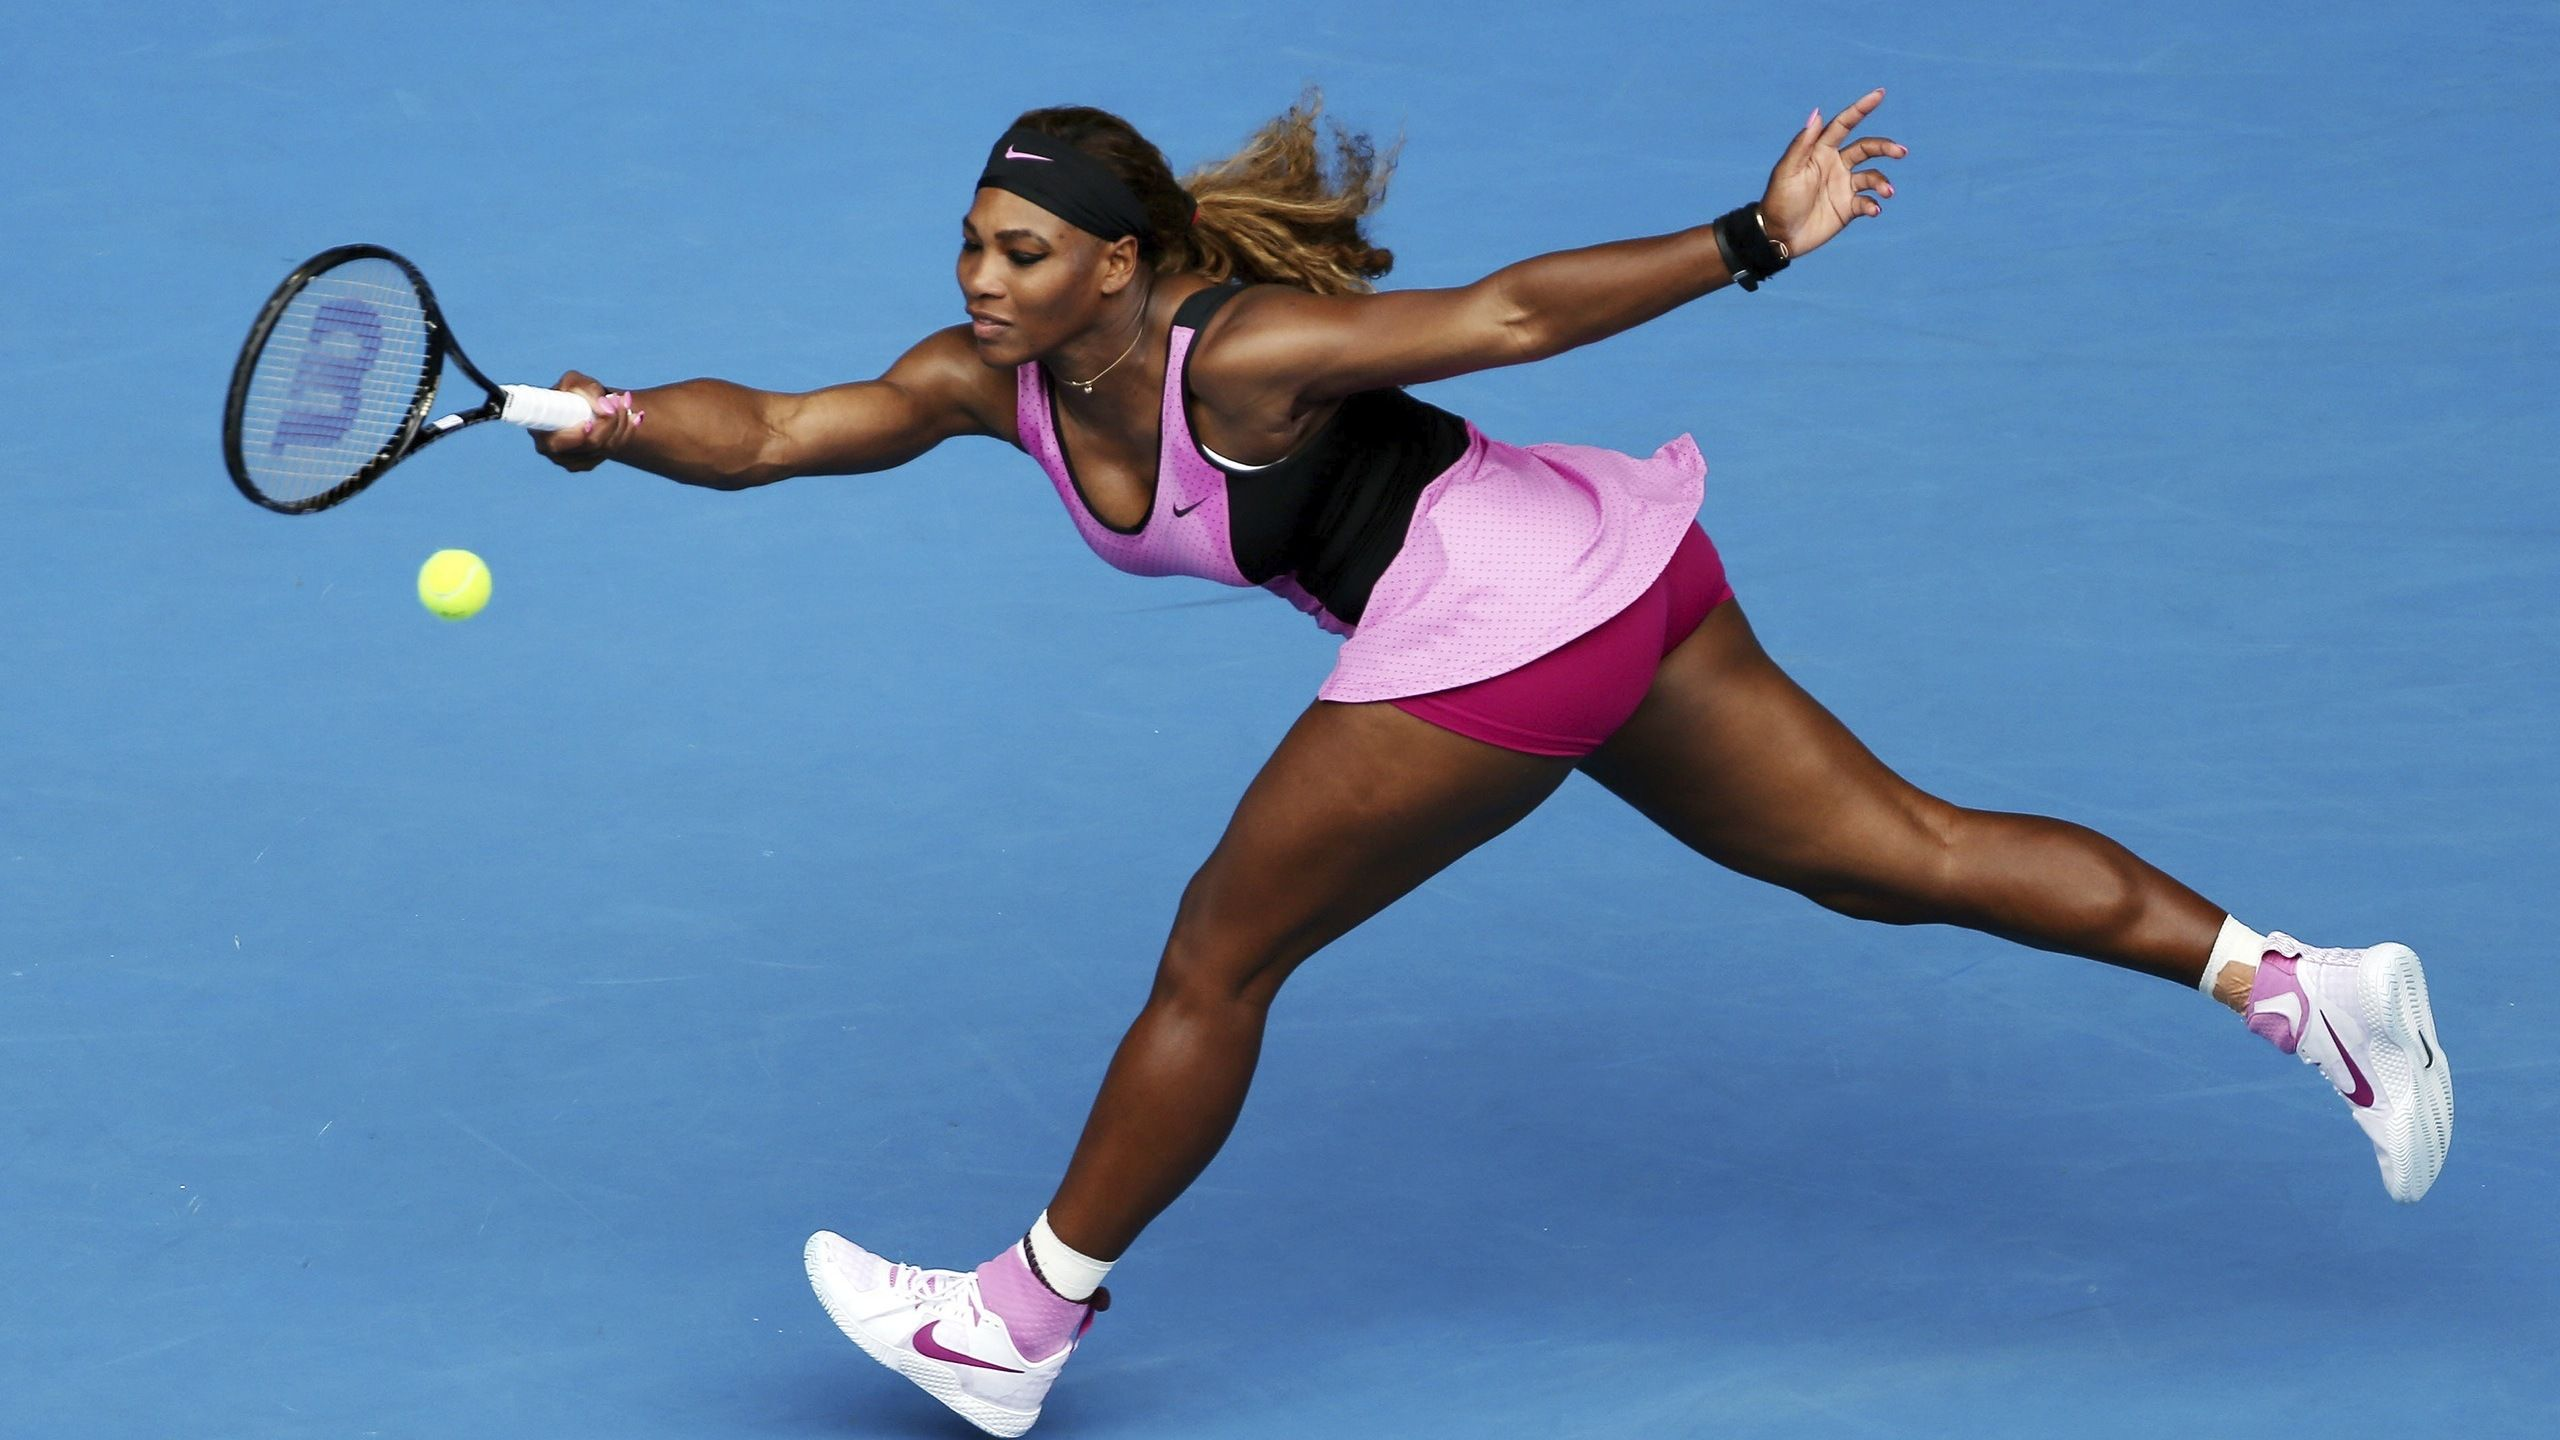 Serena Williams American Tennis Player Wallpaper Serena Williams 2560x1440